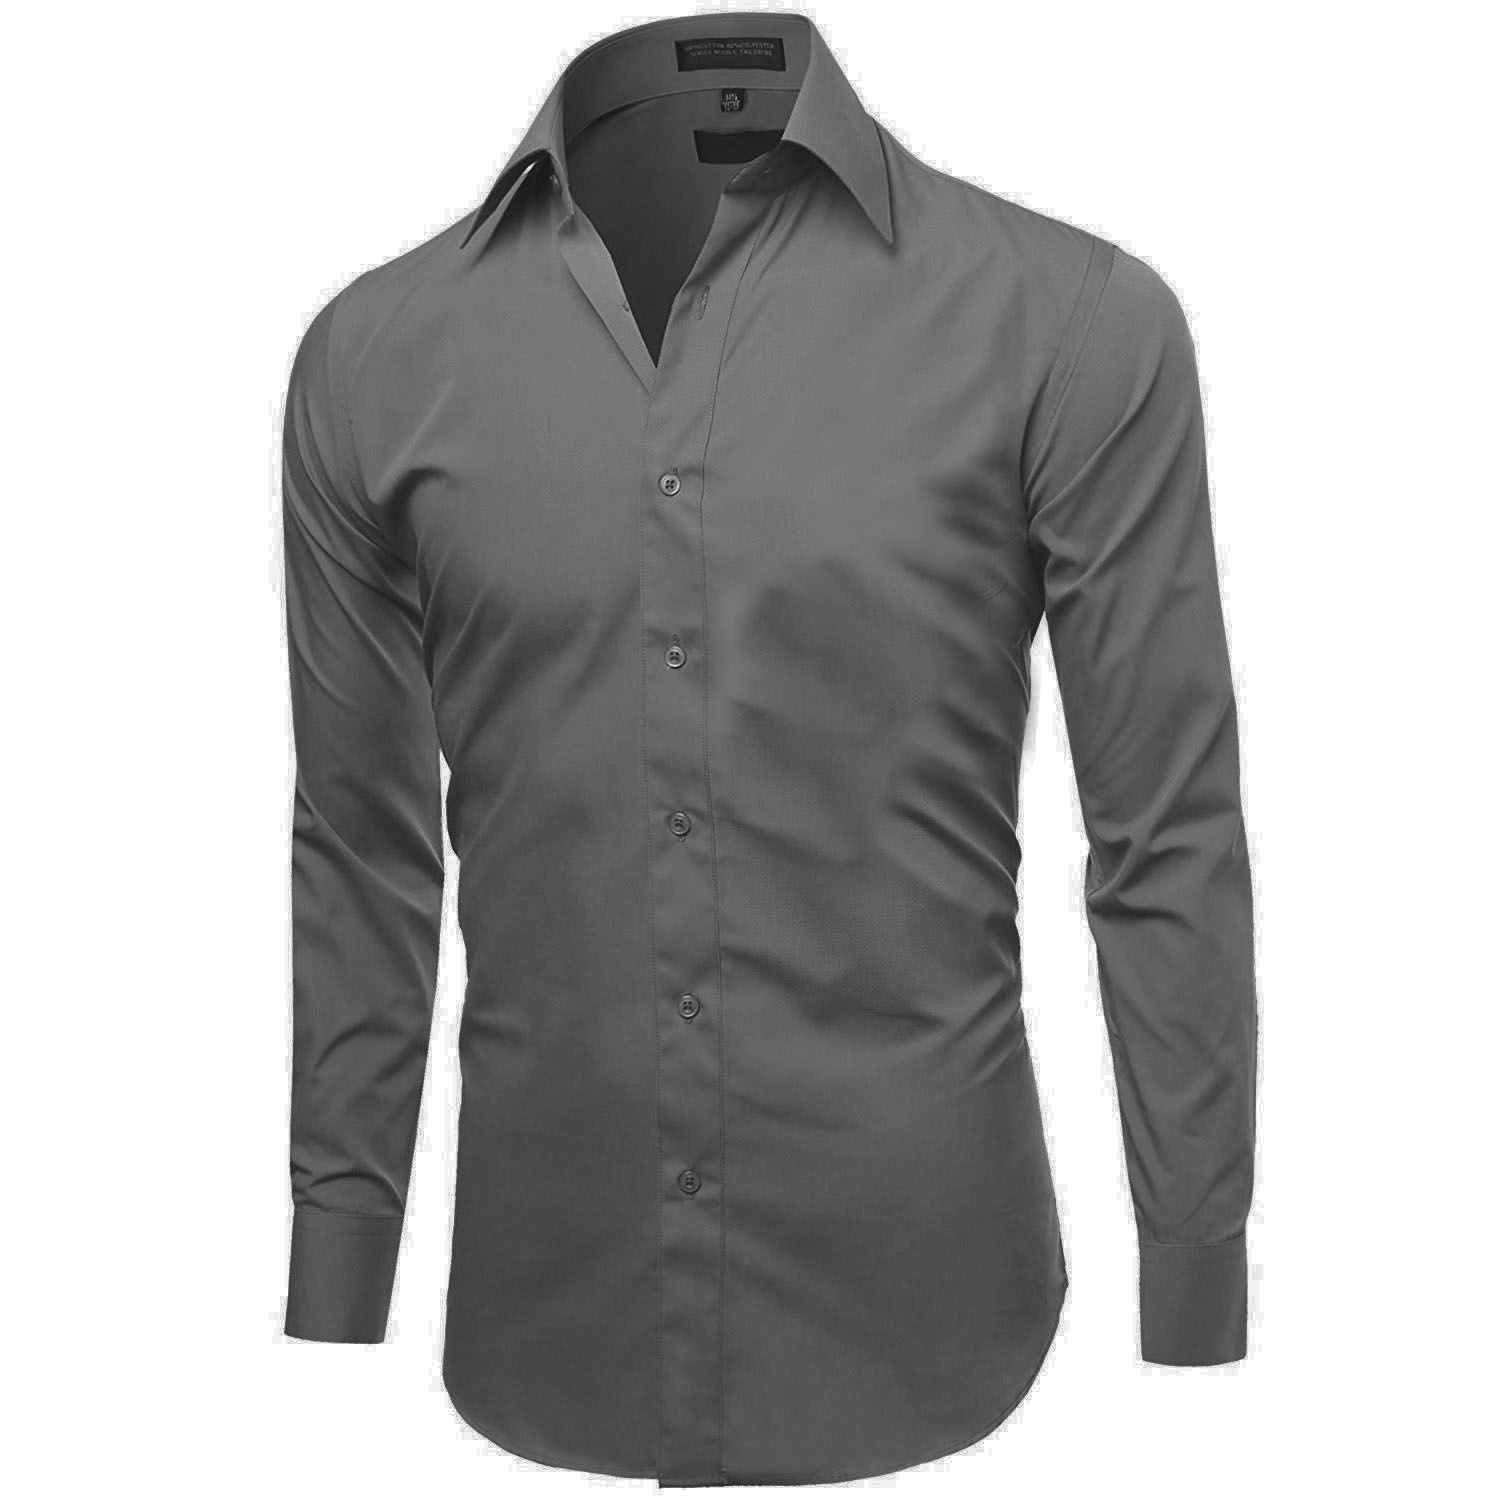 Omega-Italy-Men-039-s-Premium-Slim-Fit-Button-Up-Long-Sleeve-Solid-Color-Dress-Shirt thumbnail 18